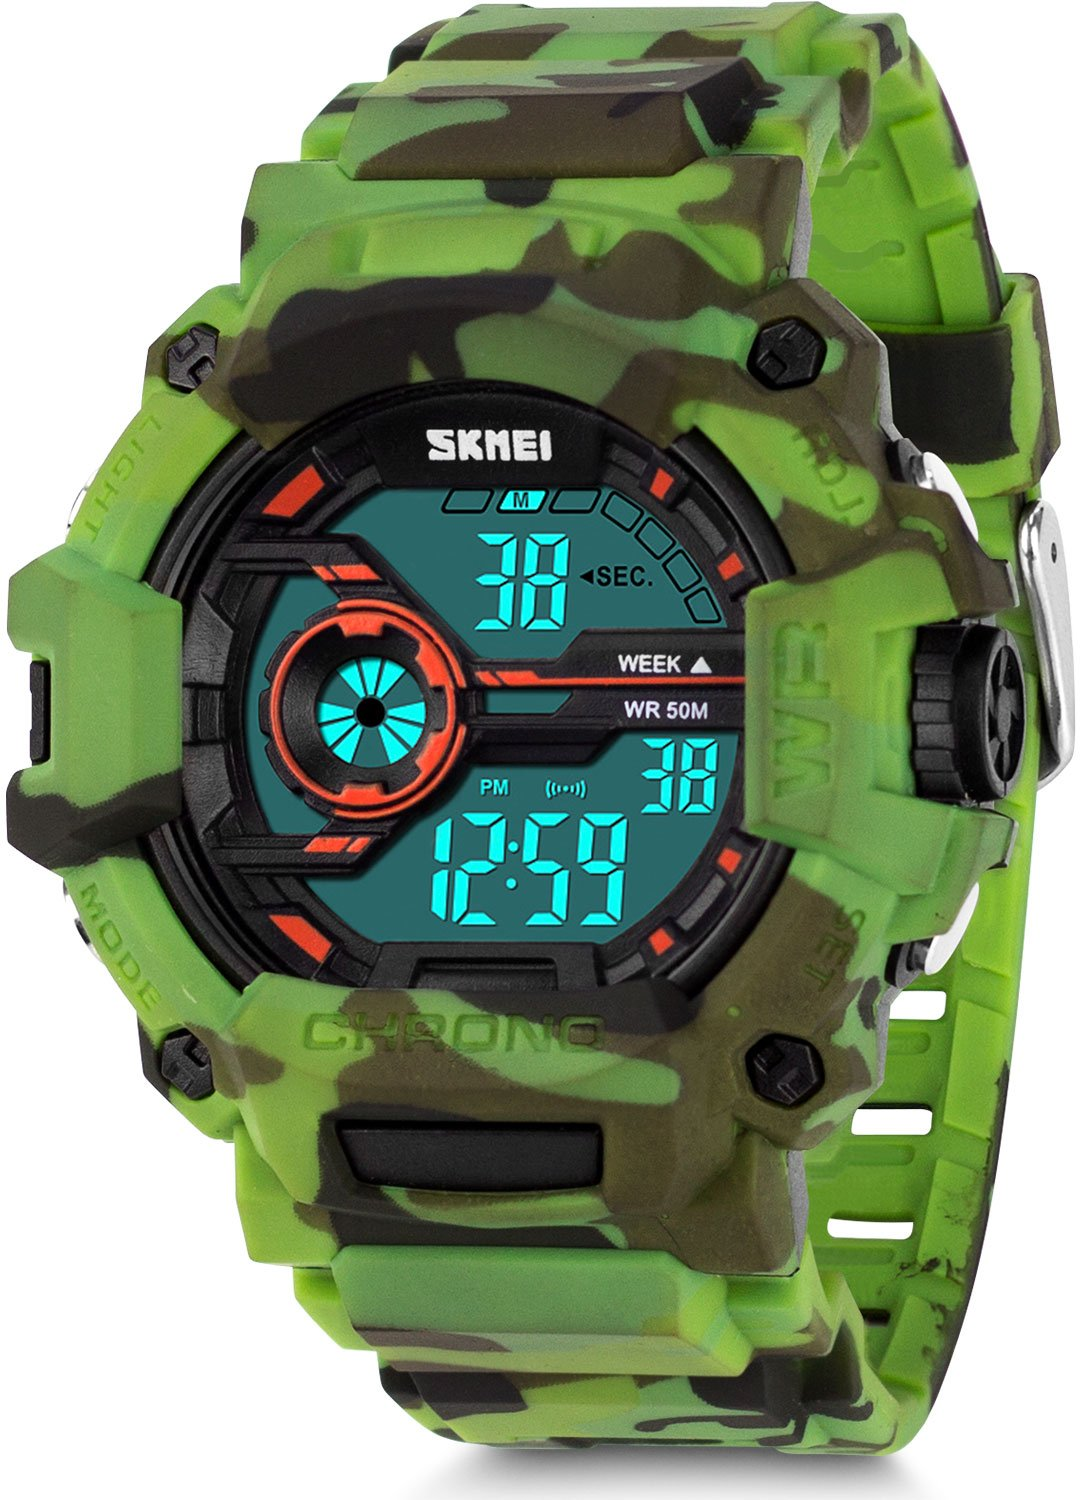 Boys Camouflage Digital Sports Watch, Aposon LED Screen Military Wrist Watch With Waterproof Casual Luminous Stopwatch Alarm Simple Army Watches-Green